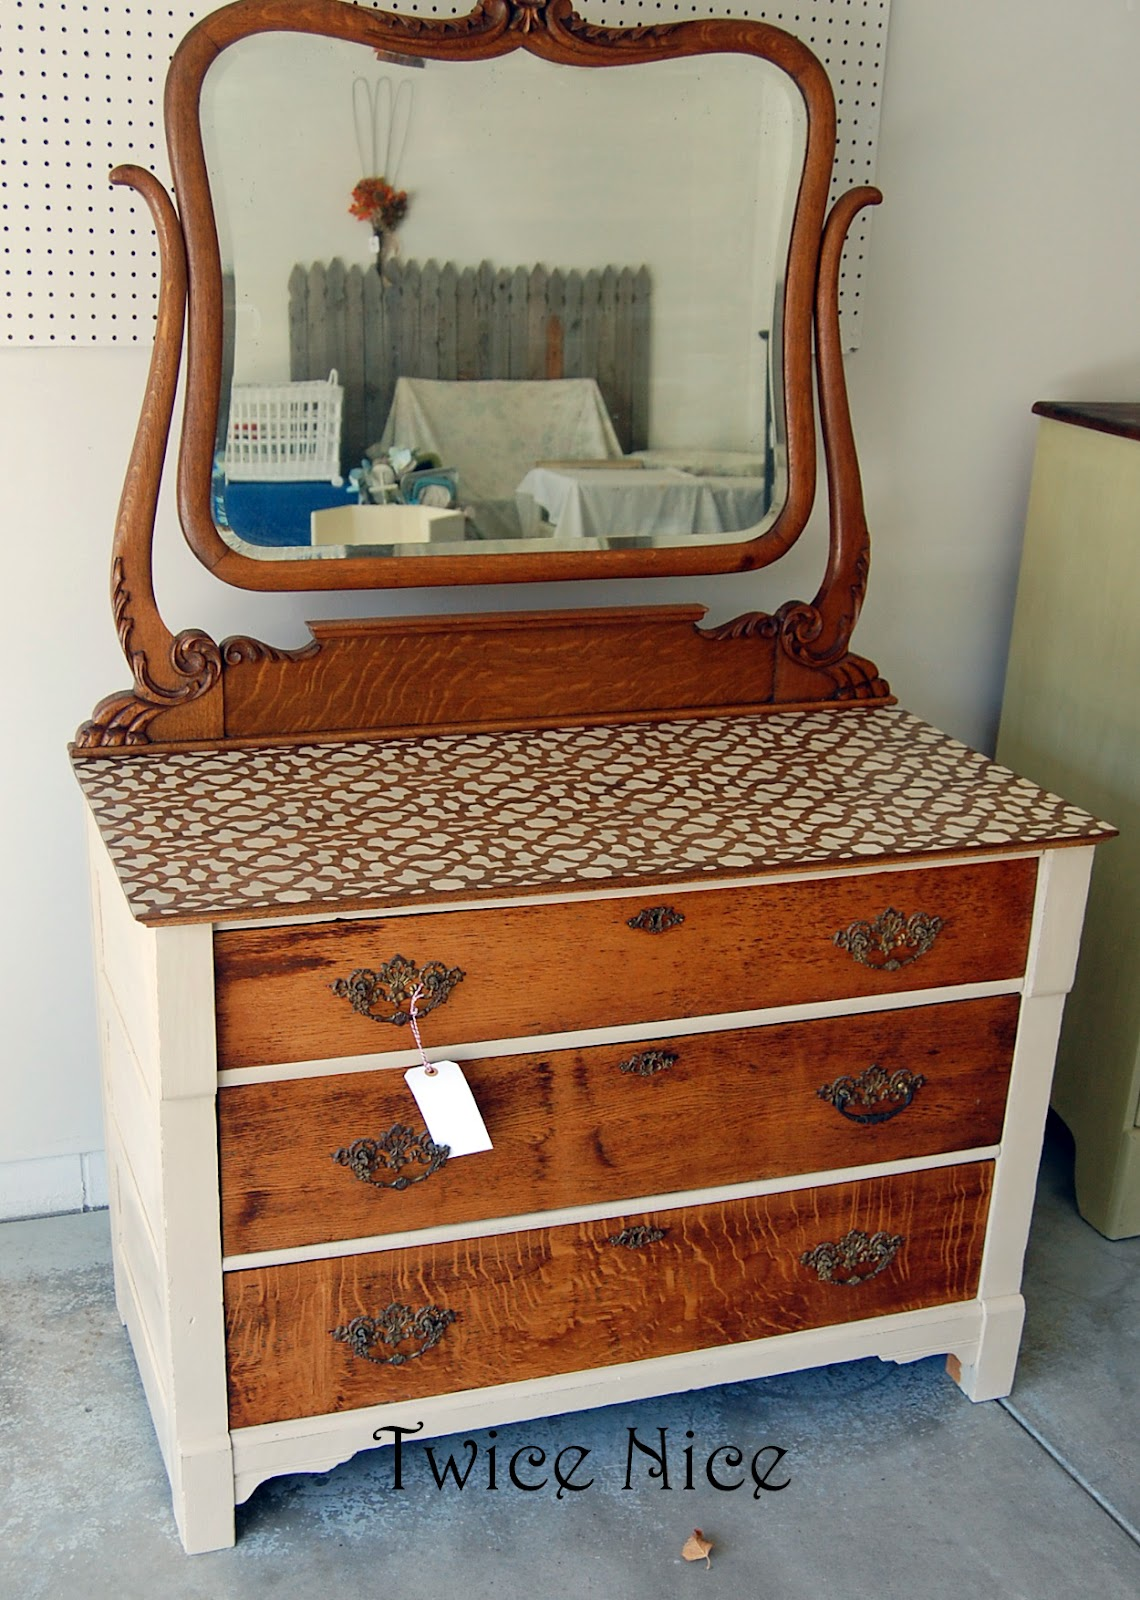 Twice Nice Two Tone Dresser Husker Chair  PRAIRIE MARKET